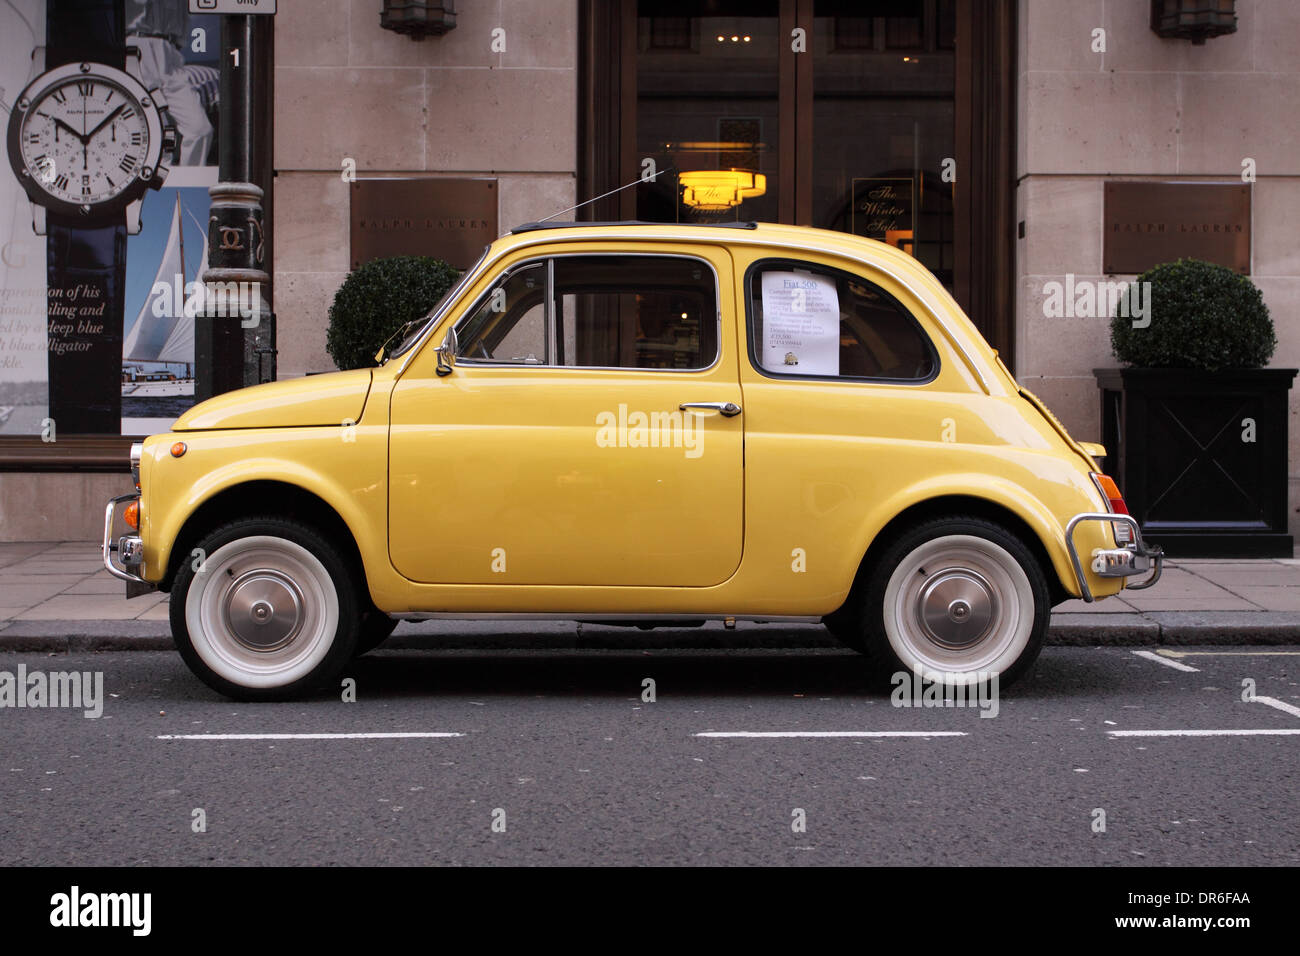 Fiat 500 car 1972 model refurbished and for sale in Mayfair London England UK - Stock Image